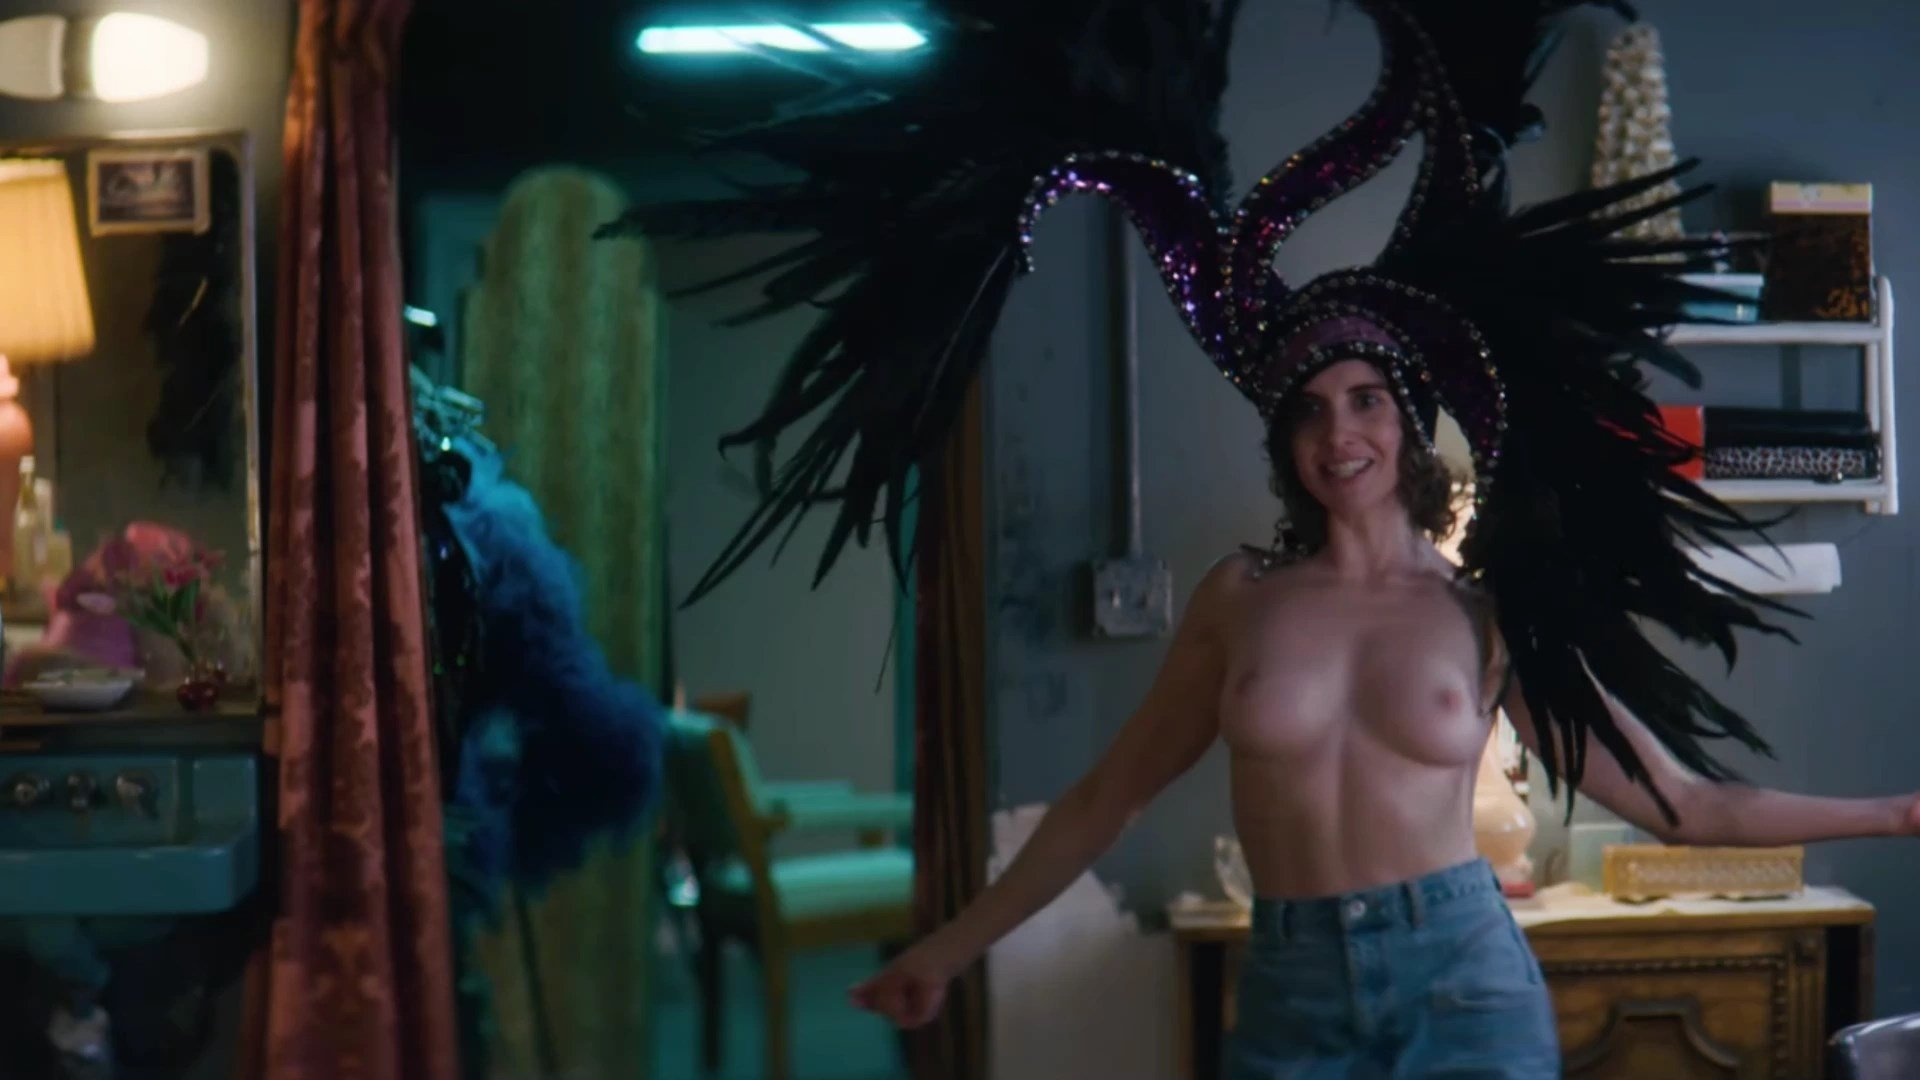 Alison Brie Leaked Nude Photos alison brie nude photos and videos | #thefappening